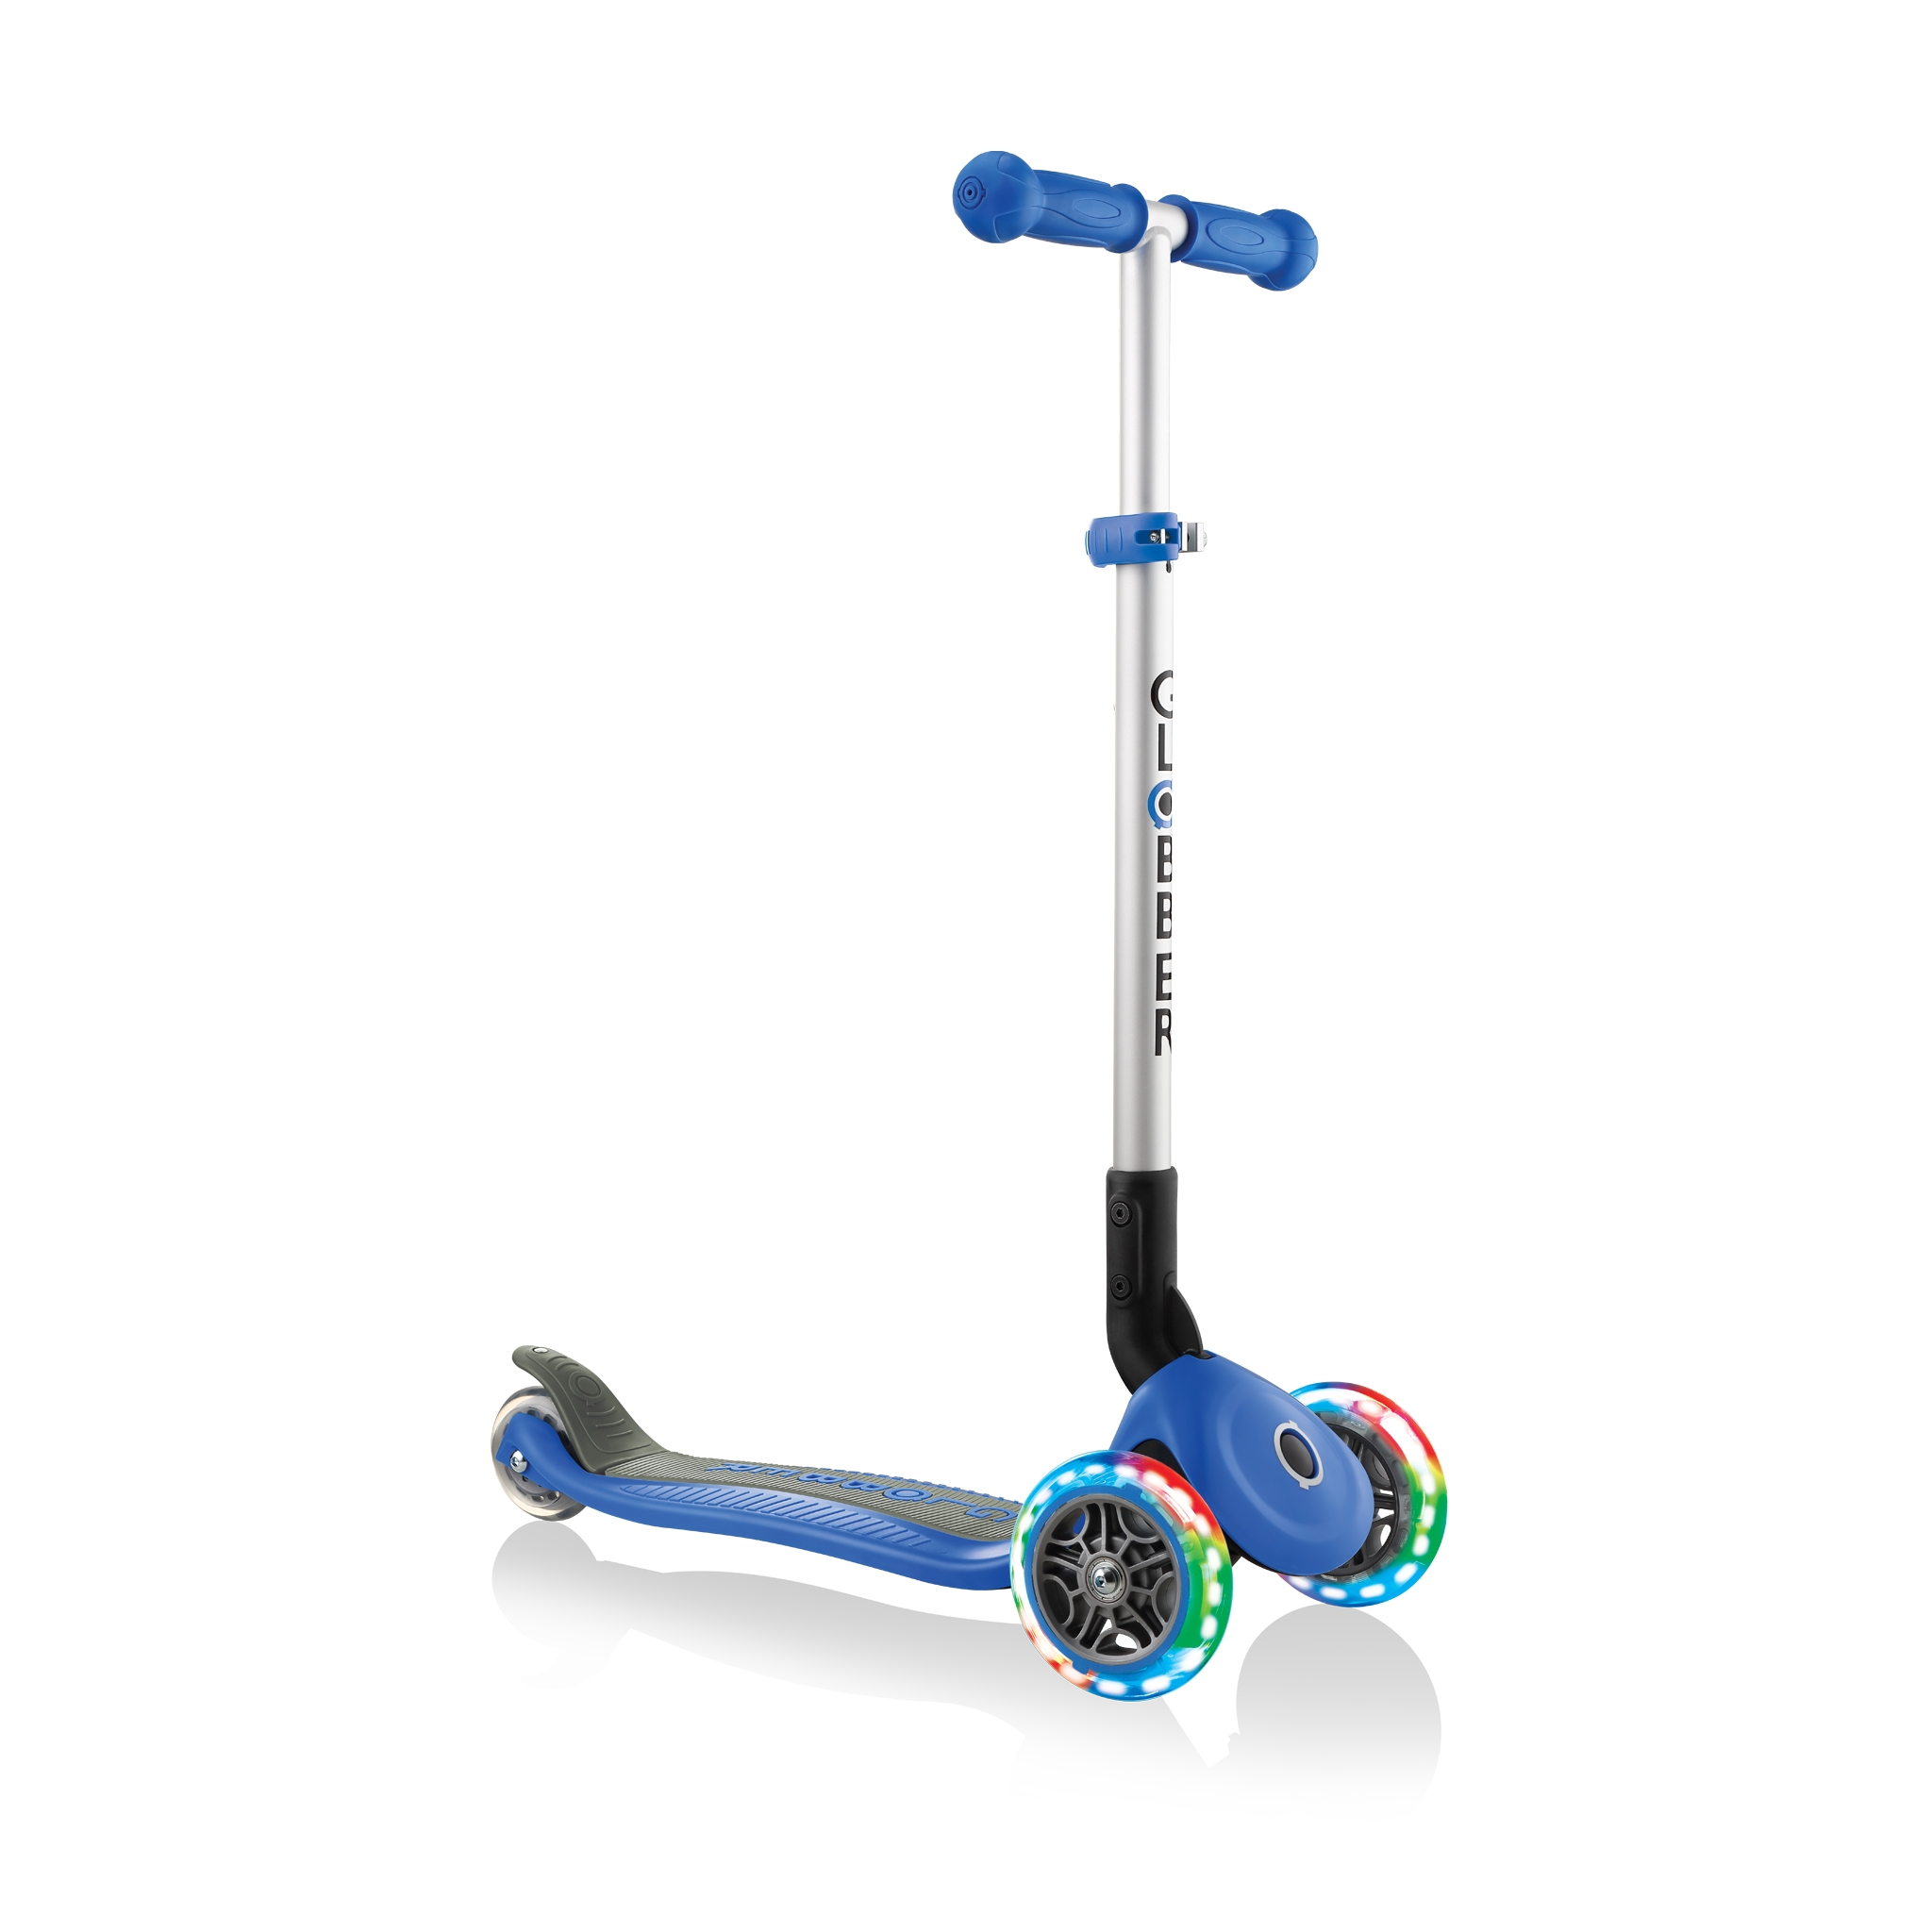 PRIMO-FOLDABLE-LIGHTS-3-wheel-foldable-scooter-light-up-scooter-for-kids-navy-blue